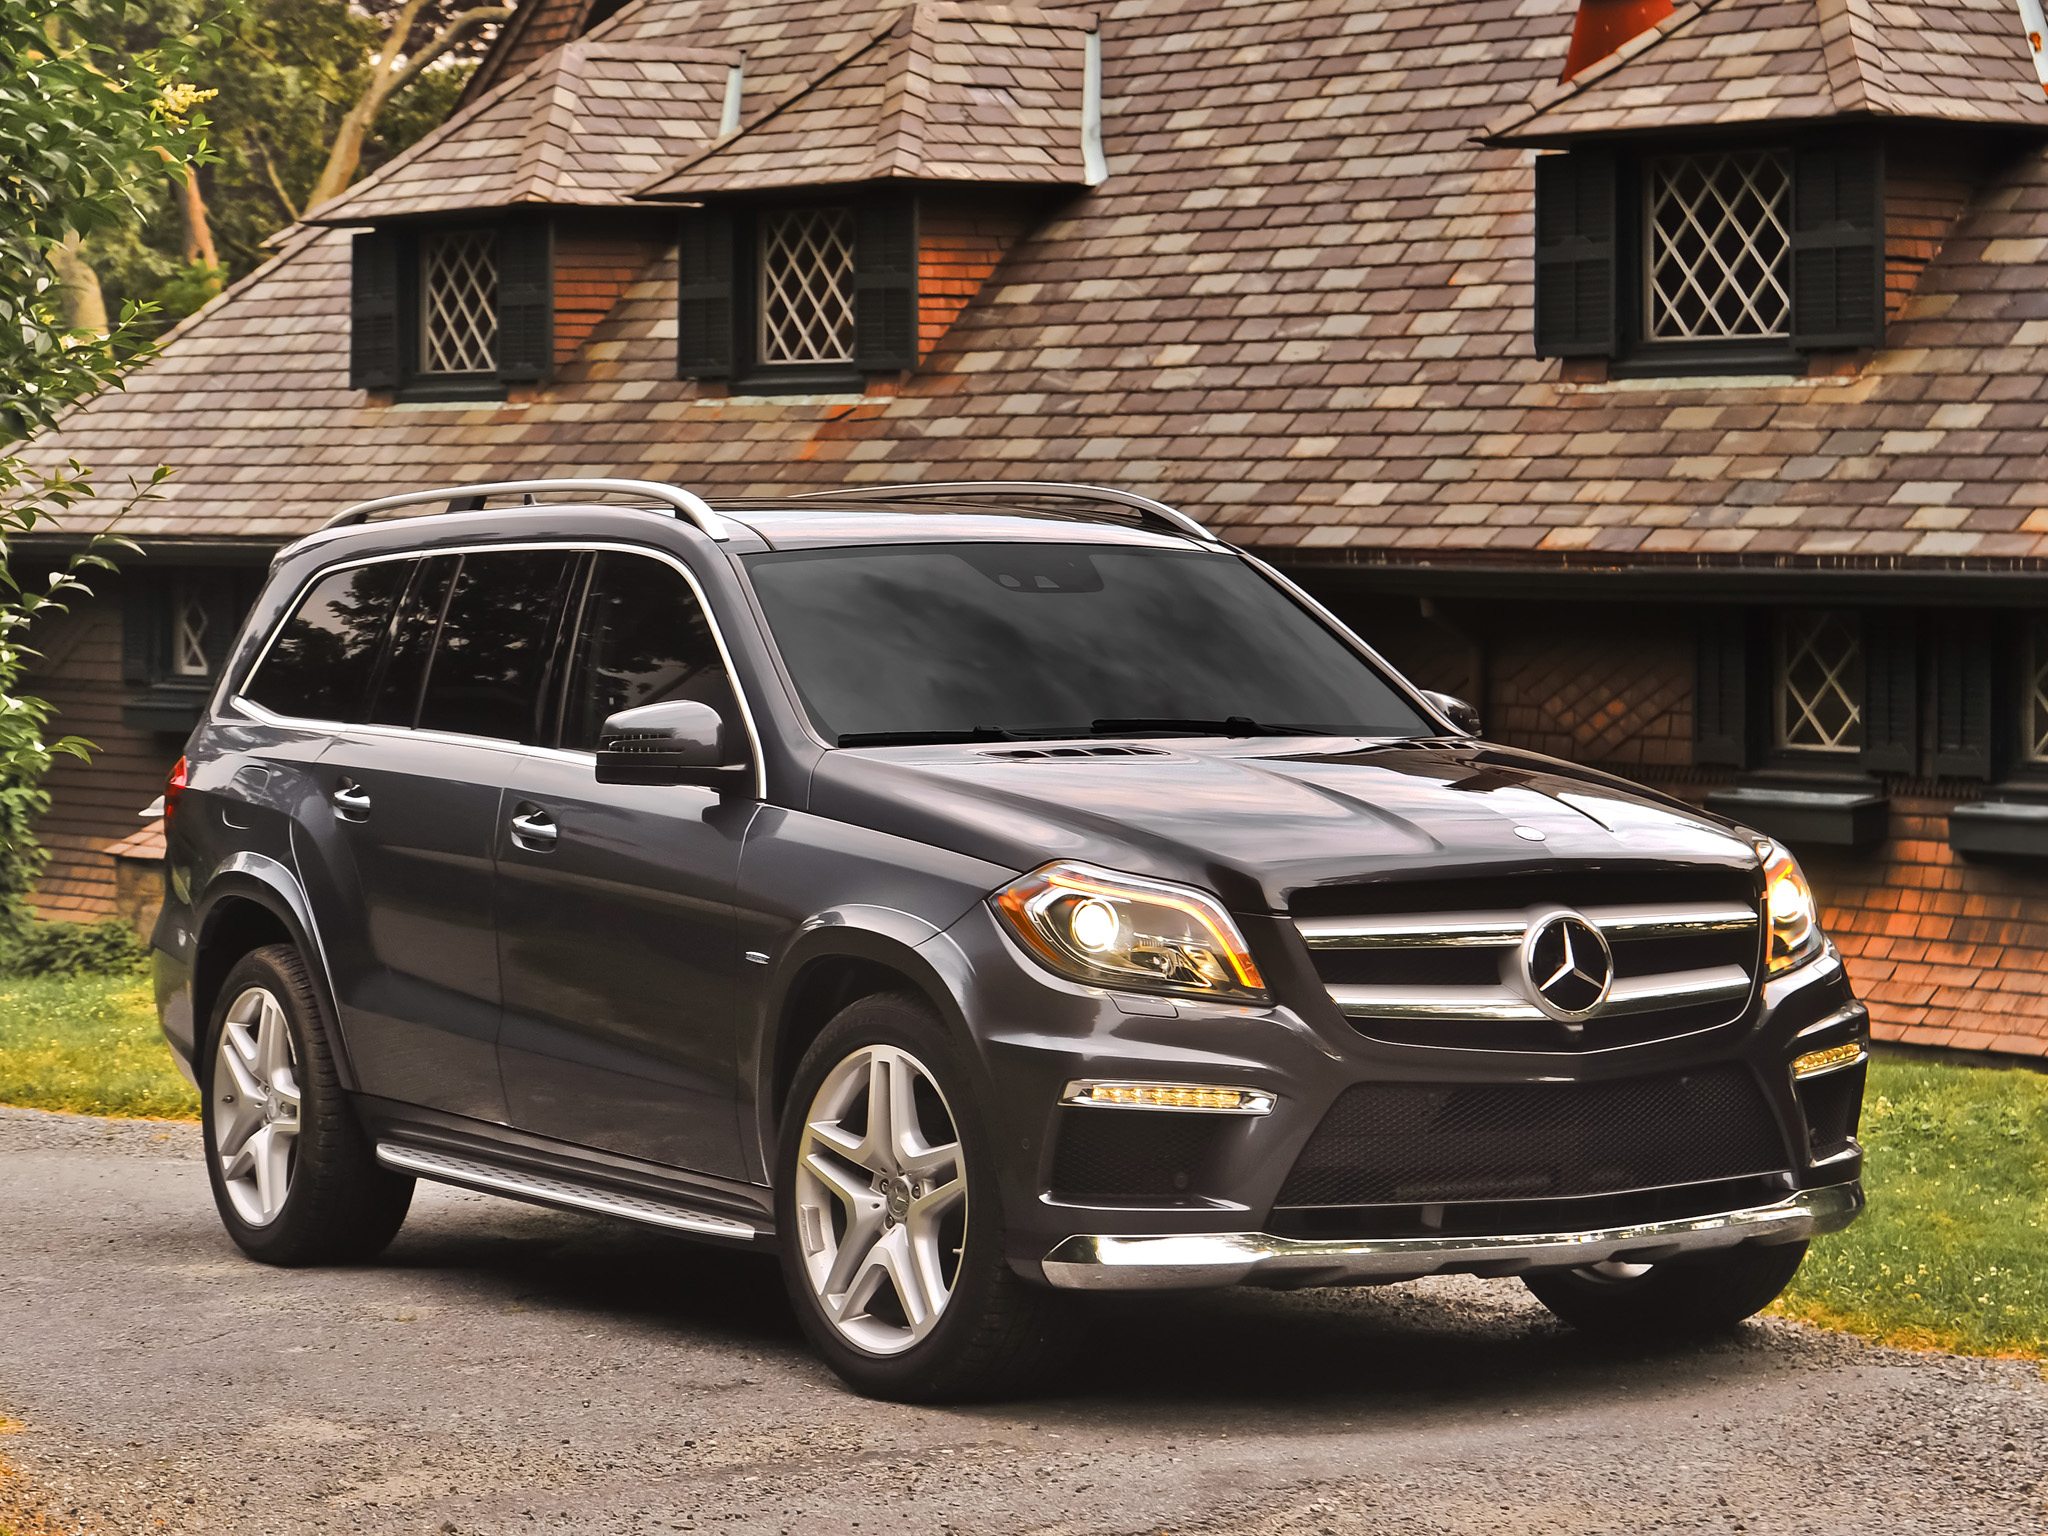 Mercedes benz gl range rover for Mercedes benz rover